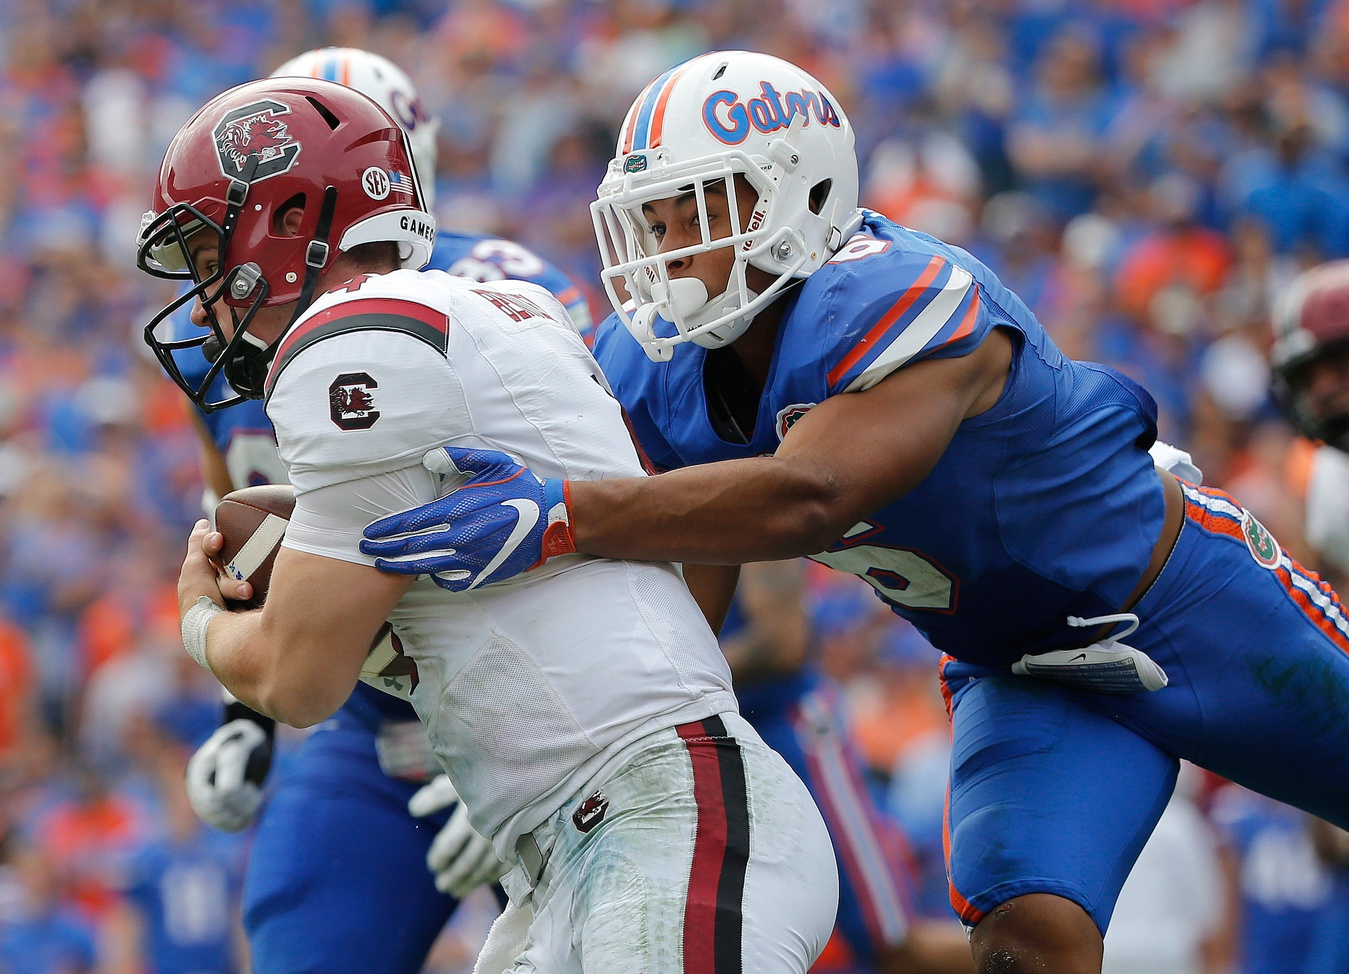 Nov 12, 2016; Gainesville, FL, USA; Florida Gators defensive back Quincy Wilson (6) tackles South Carolina Gamecocks quarterback Jake Bentley (4) during the second half at Ben Hill Griffin Stadium. Florida Gators defeated the South Carolina Gamecocks 20-7. Mandatory Credit: Kim Klement-USA TODAY Sports